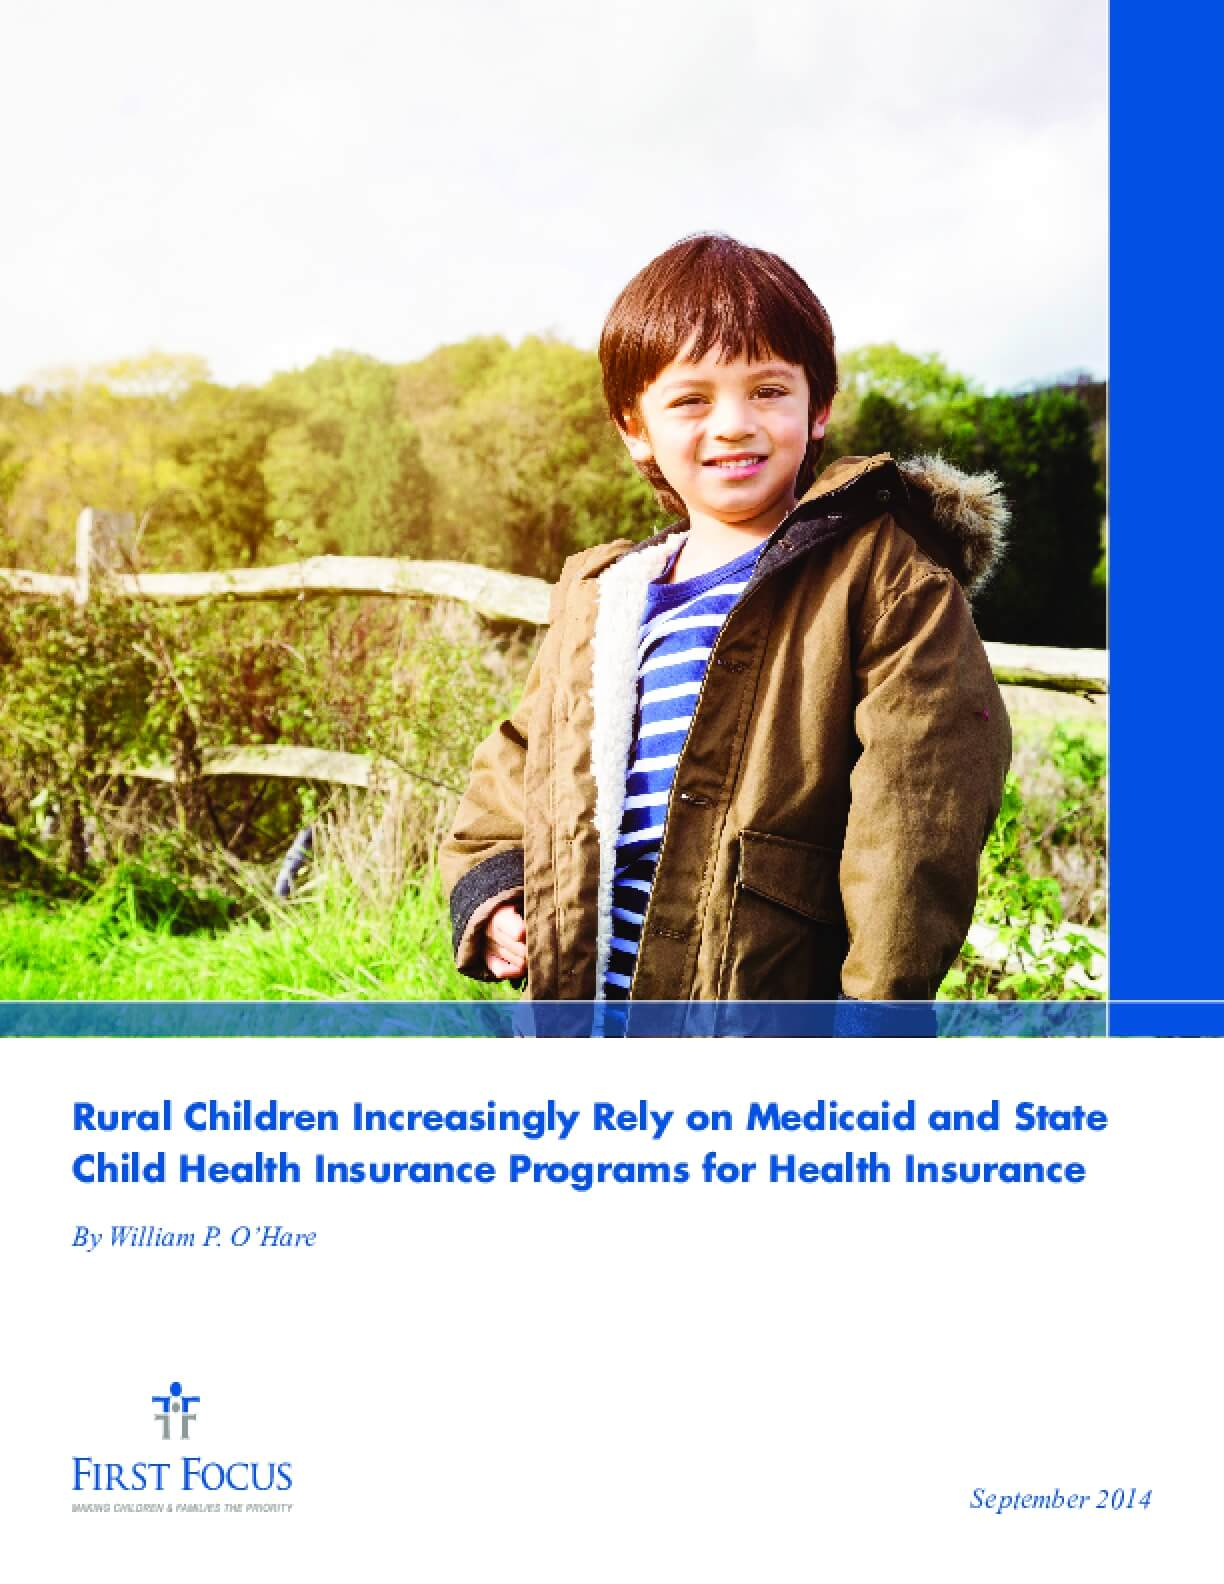 Rural Children Increasingly Rely on Medicaid and State  Child Health Insurance Programs for Health Insurance